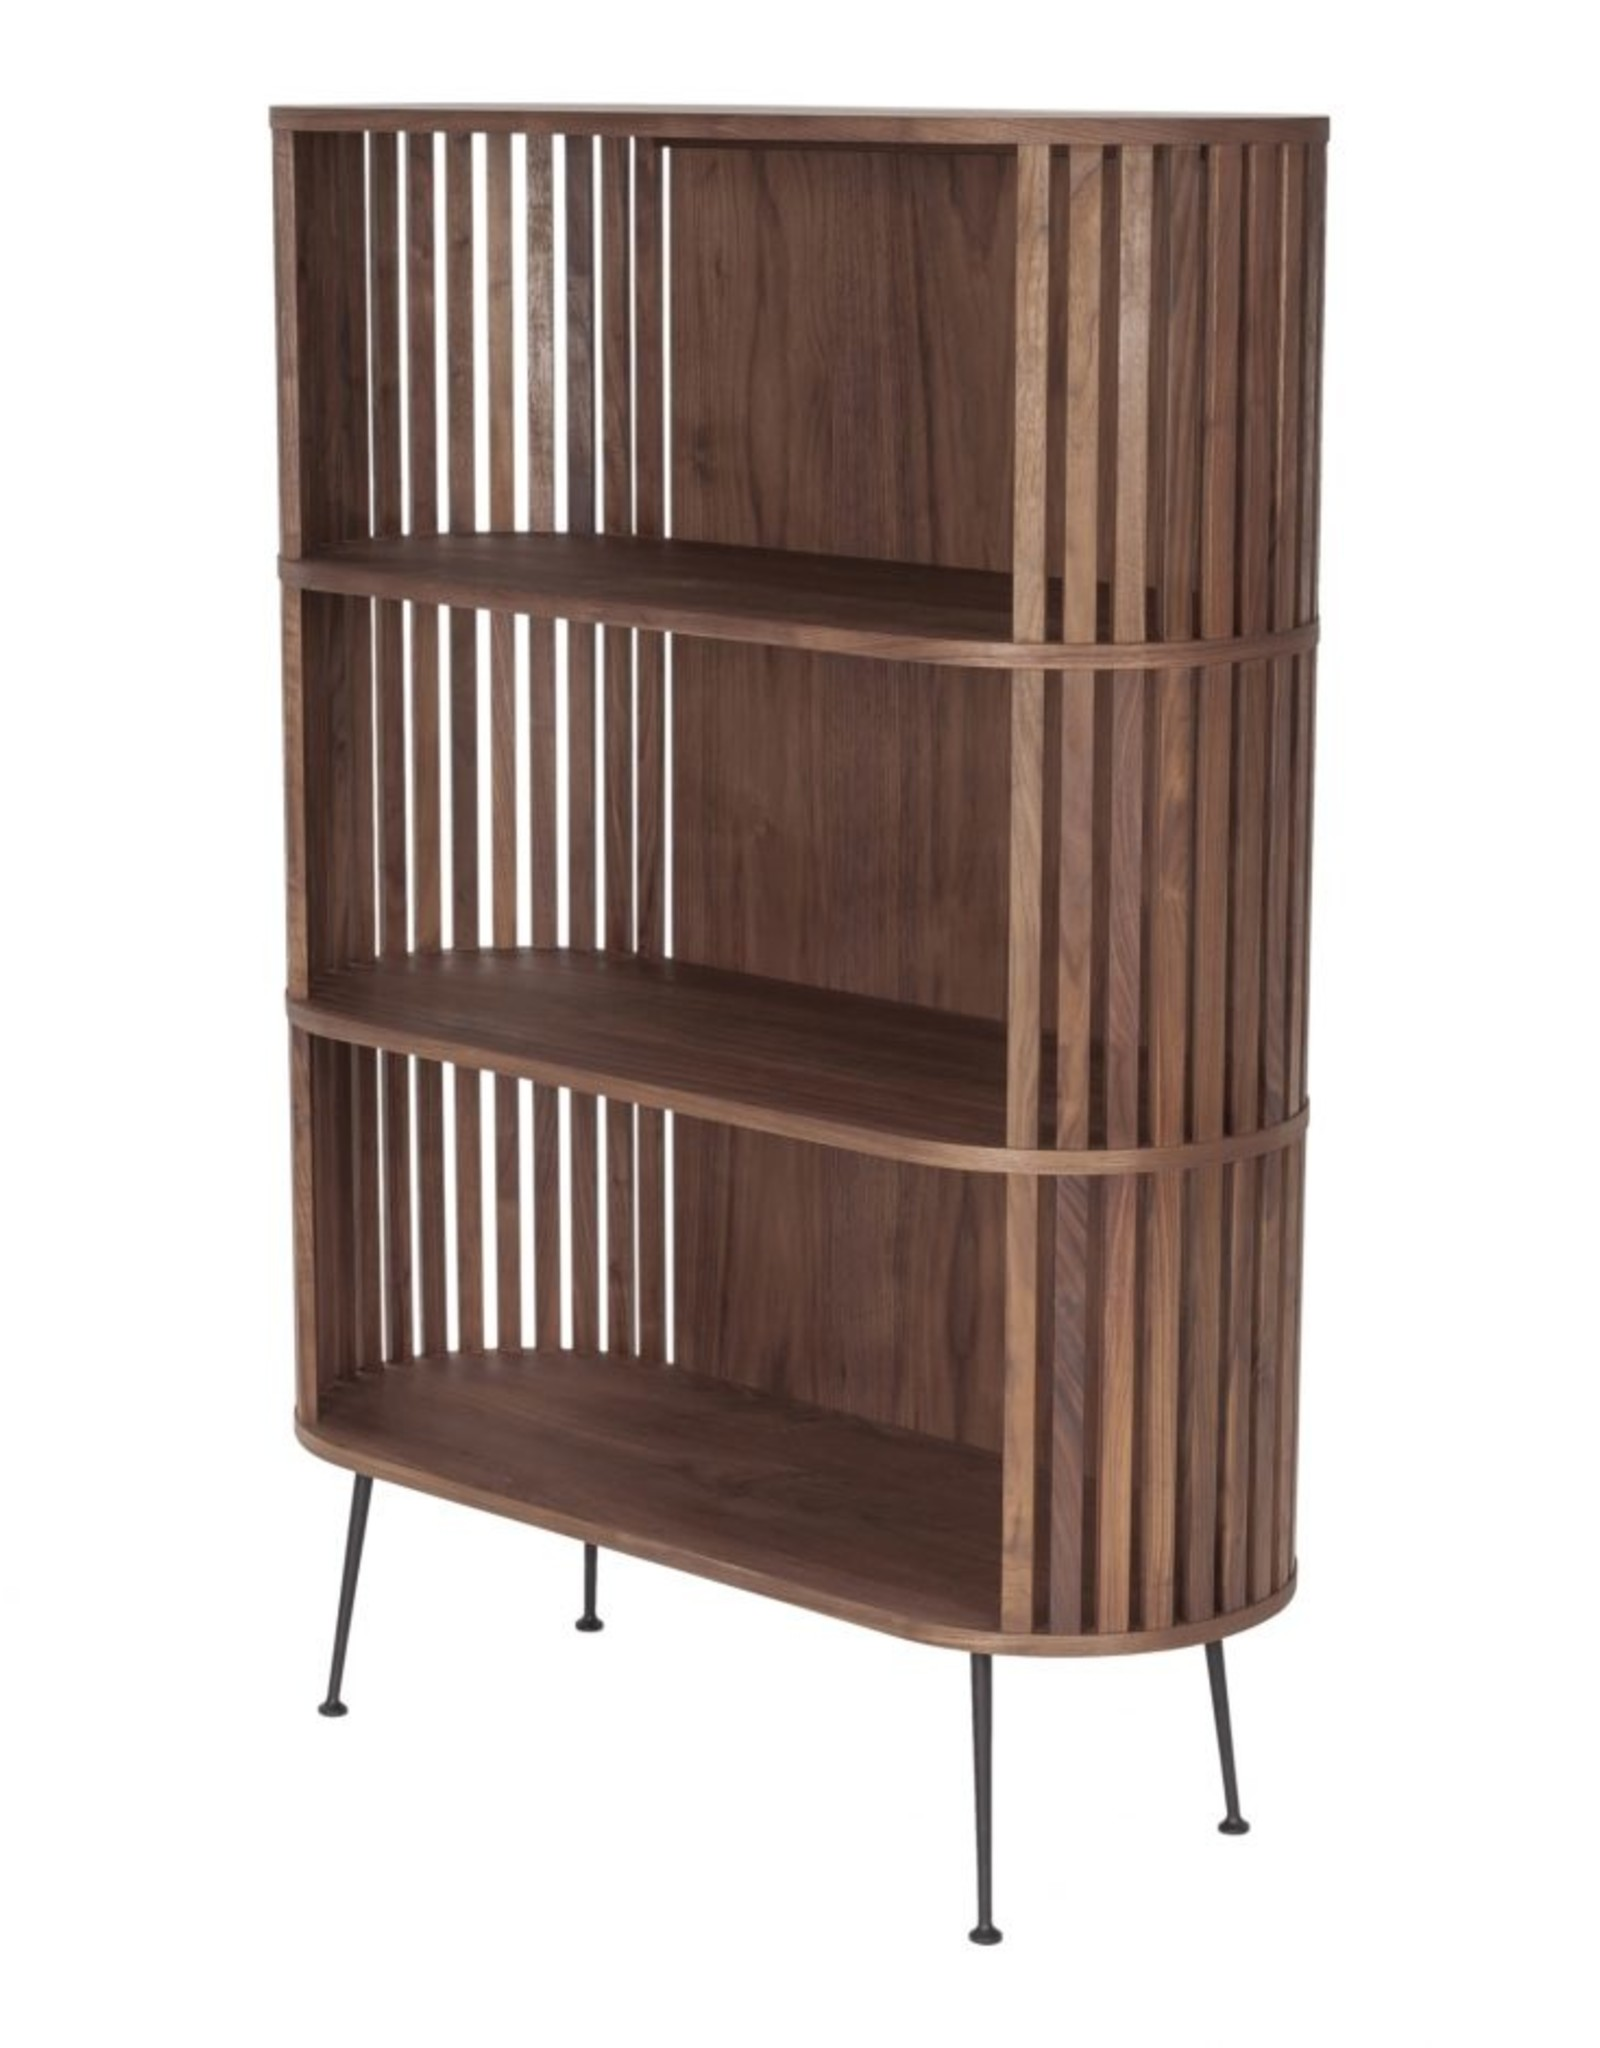 Moes Home Collection Moes Henrich Bookshelf YC-1024-21